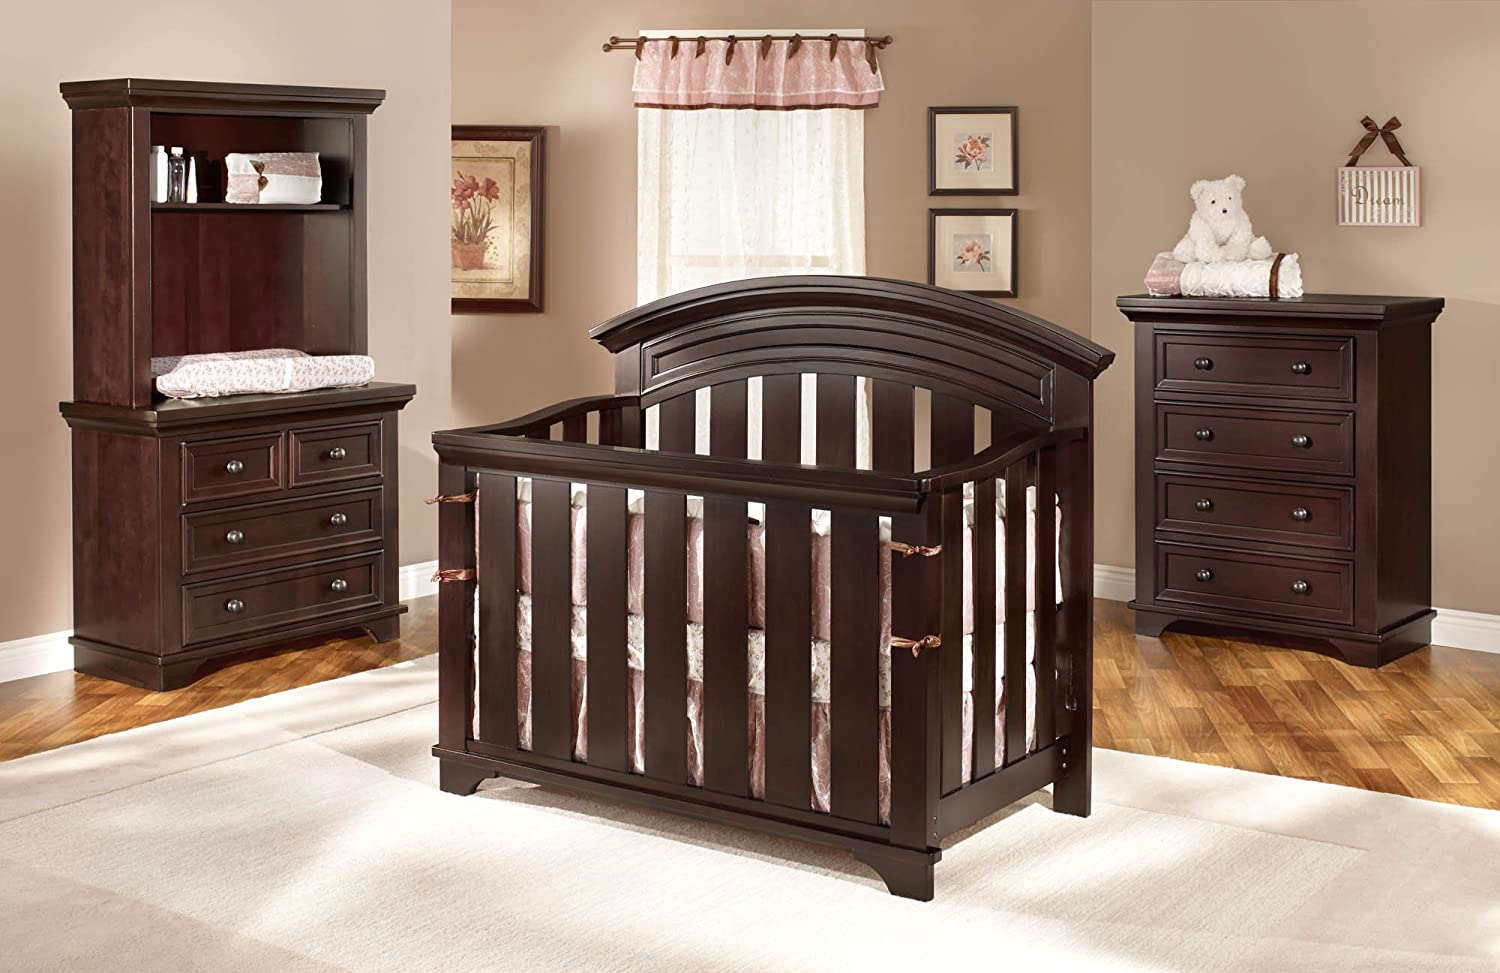 wyatt navy crib geneva westwood product baby cottage category cribs